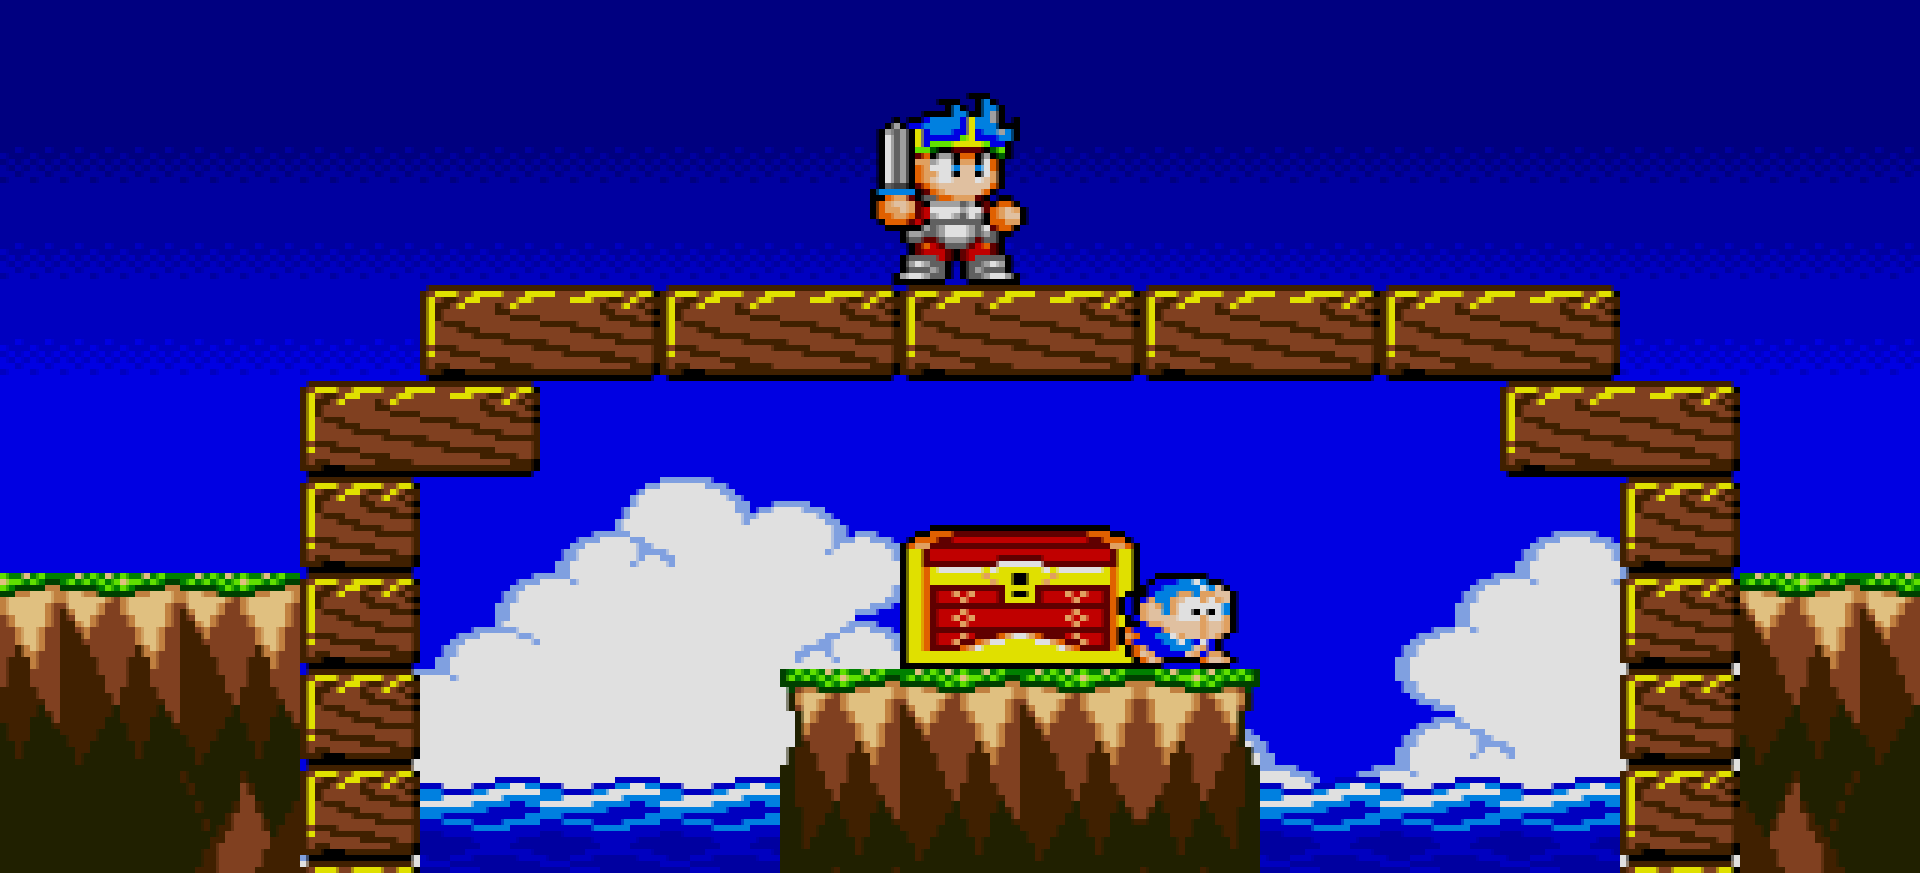 Wonder Boy in Monster World bridge over a bit old fucking box of treasure